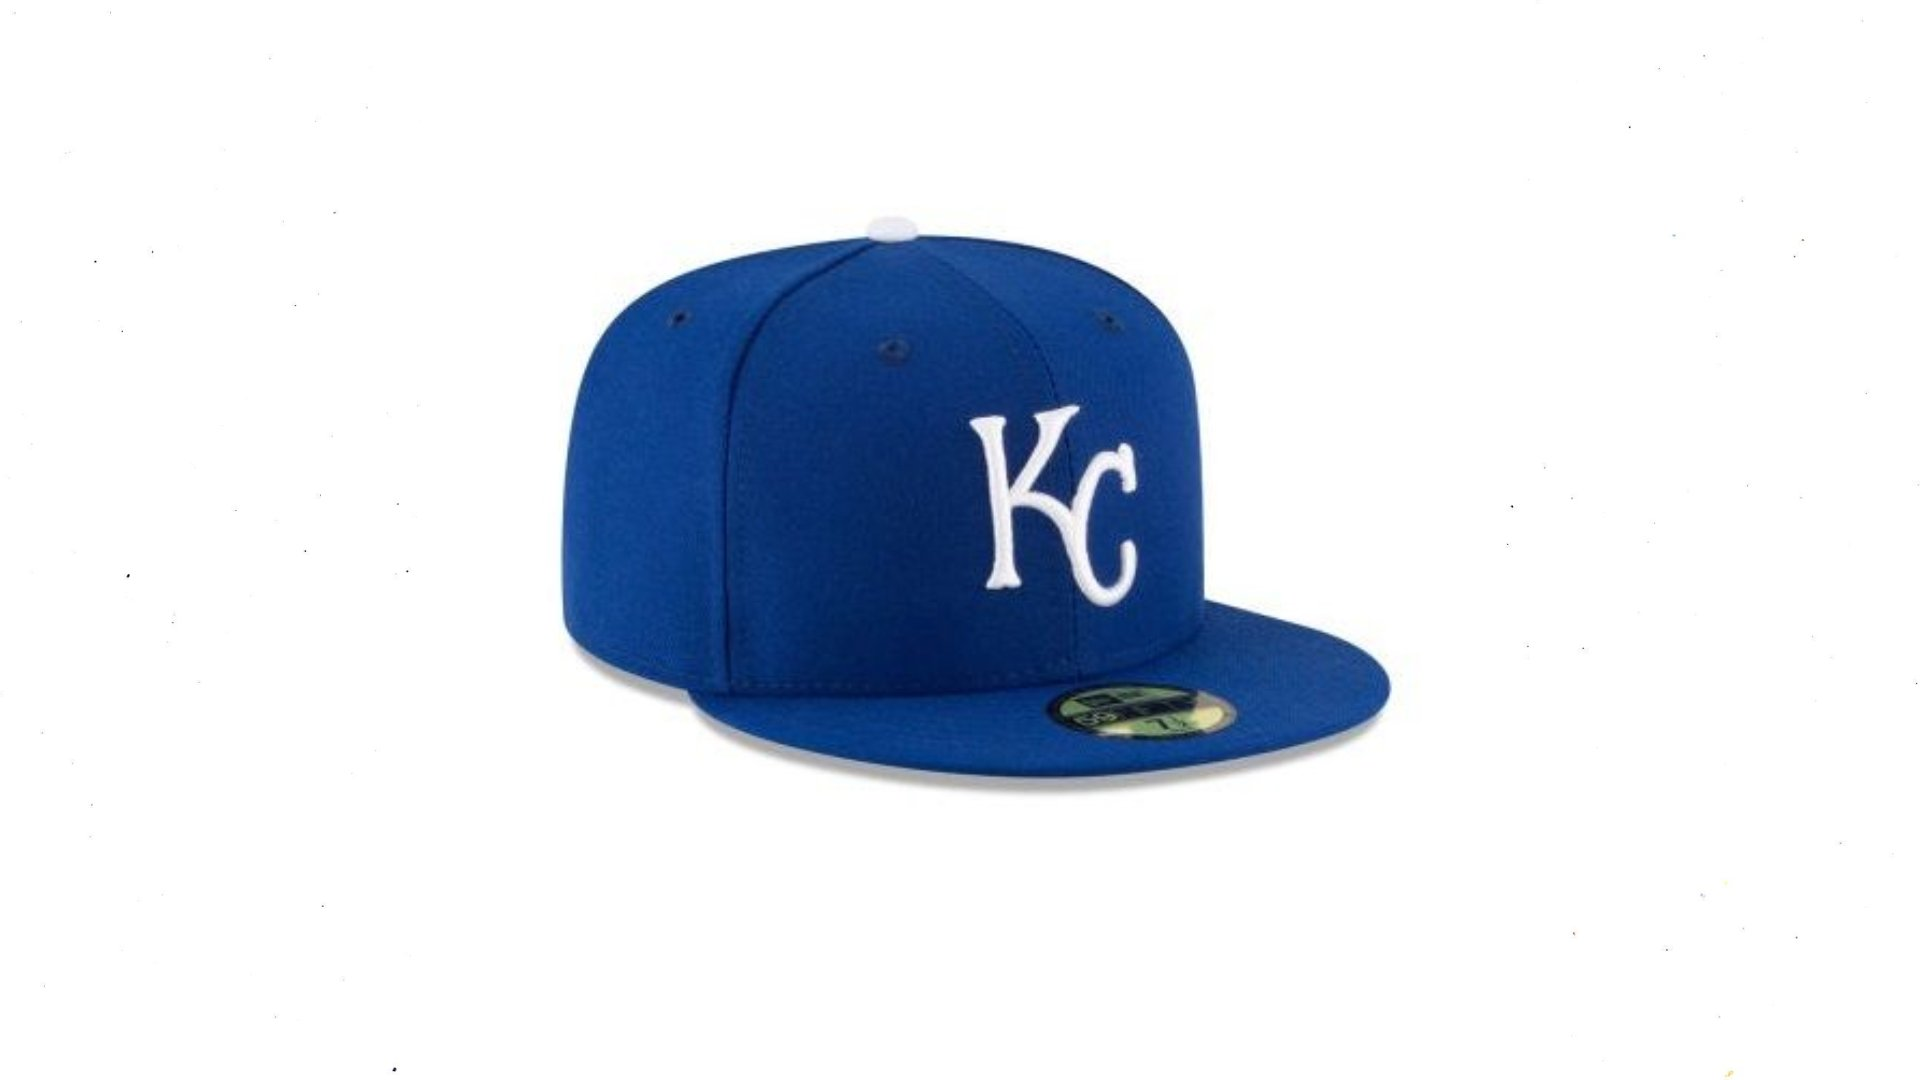 3221f0f4 At first glance, the Kansas City Royals logo seems to perfectly fit the  needs of the Los Angeles Kitchen Crips. The blue colors are similar to  those ...